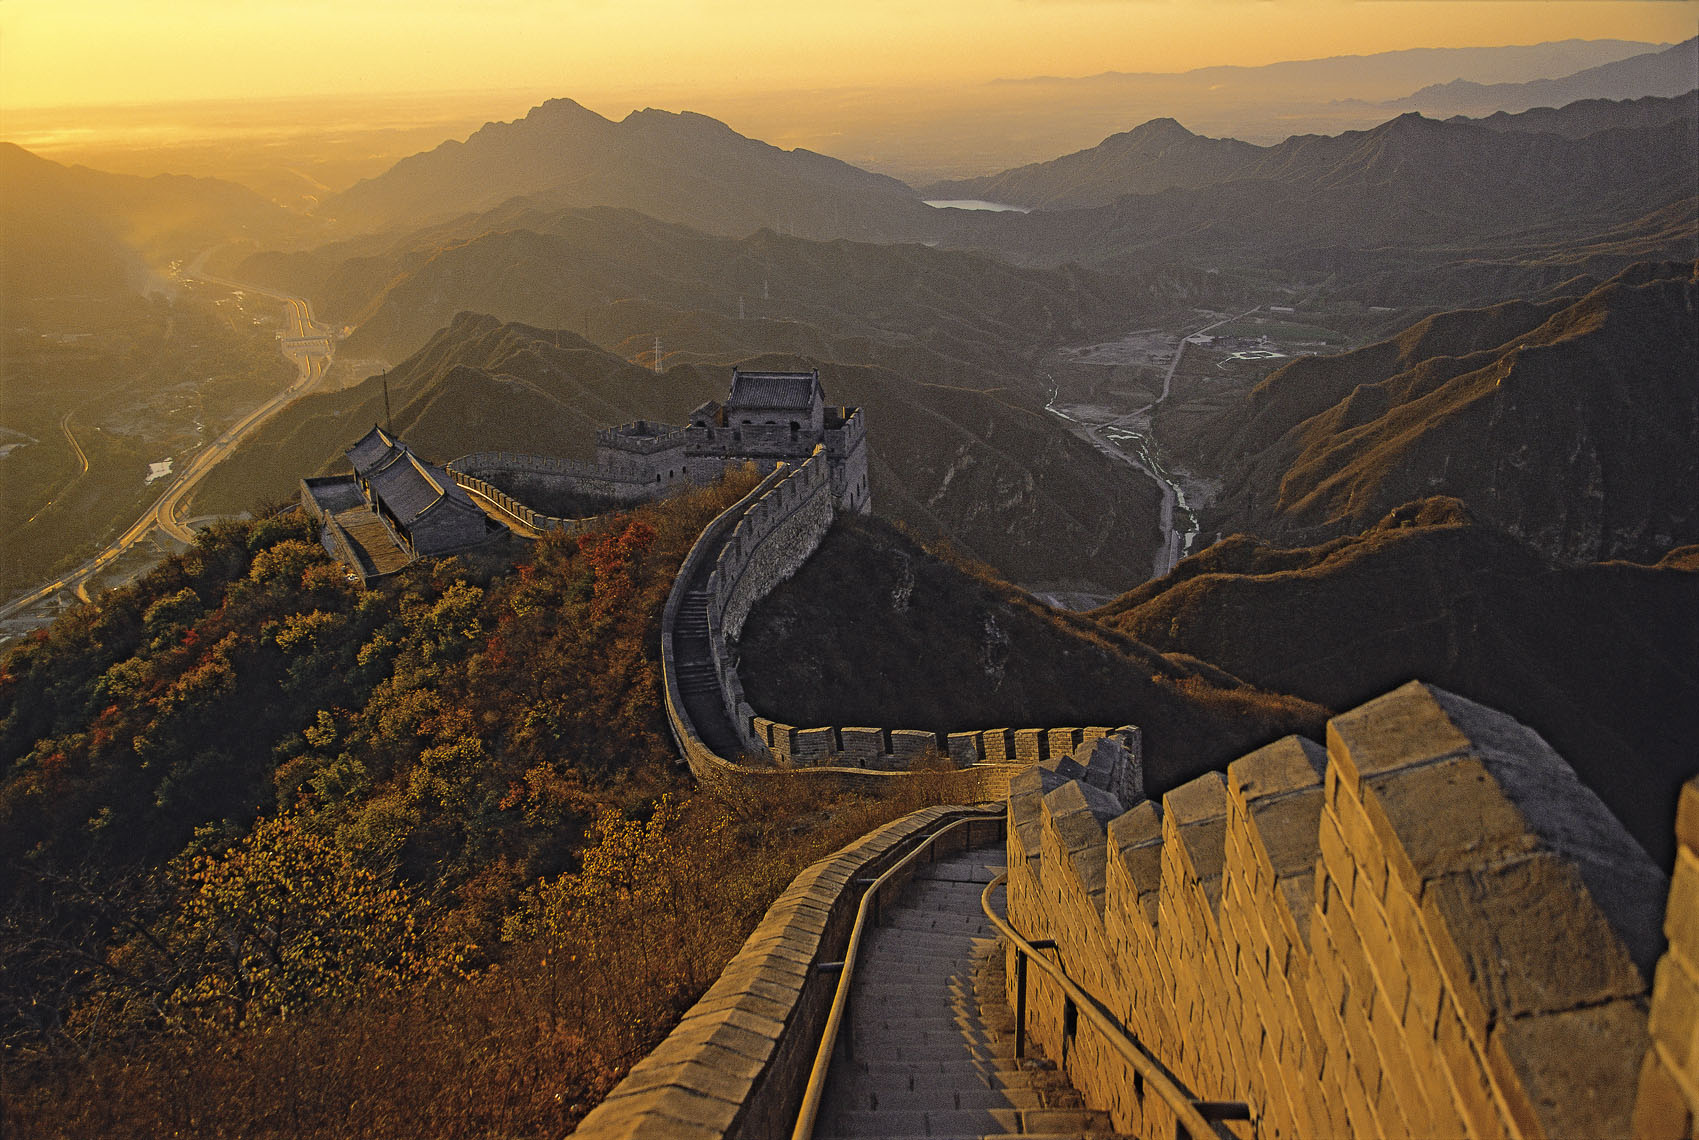 GreatWall_07.jpg